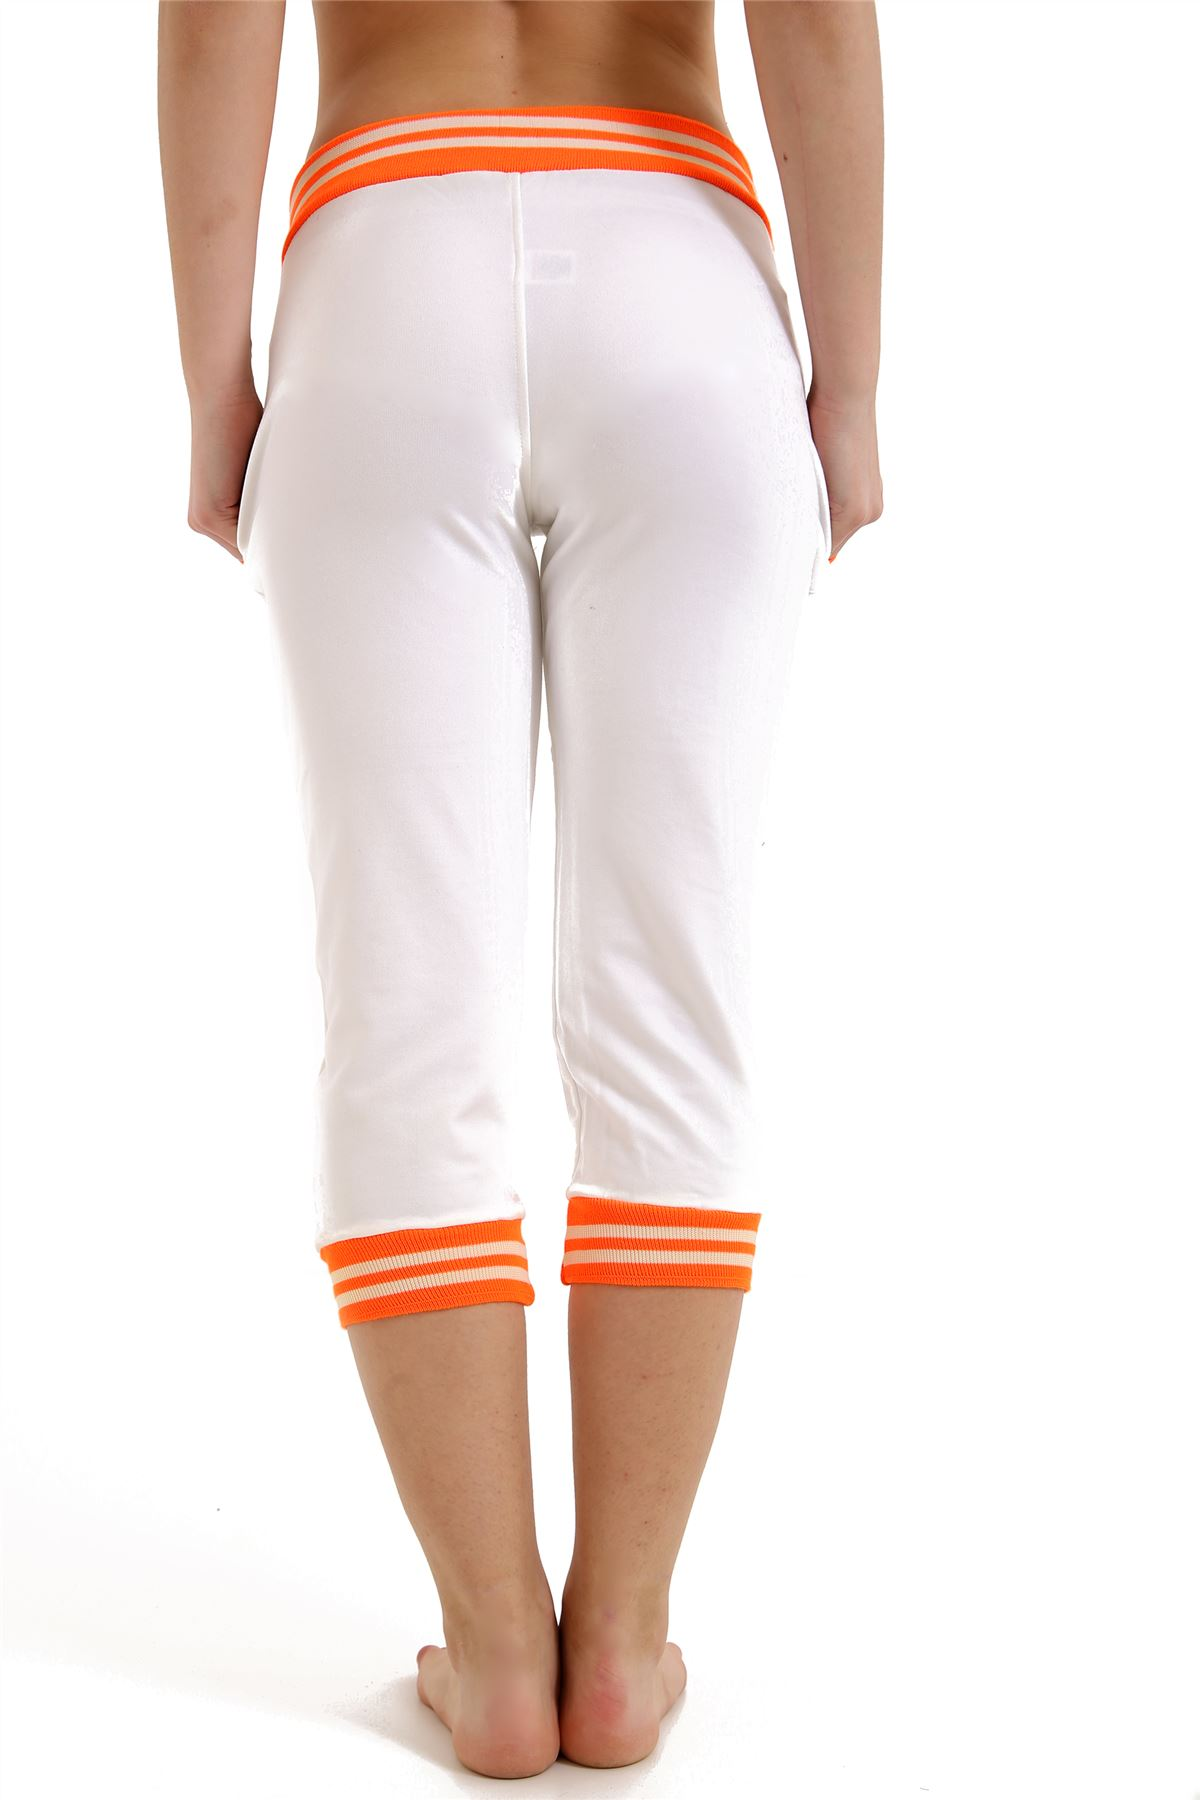 New Womens Contrast Sports Three Quarters Gym Jogging Pants Athletic Trousers